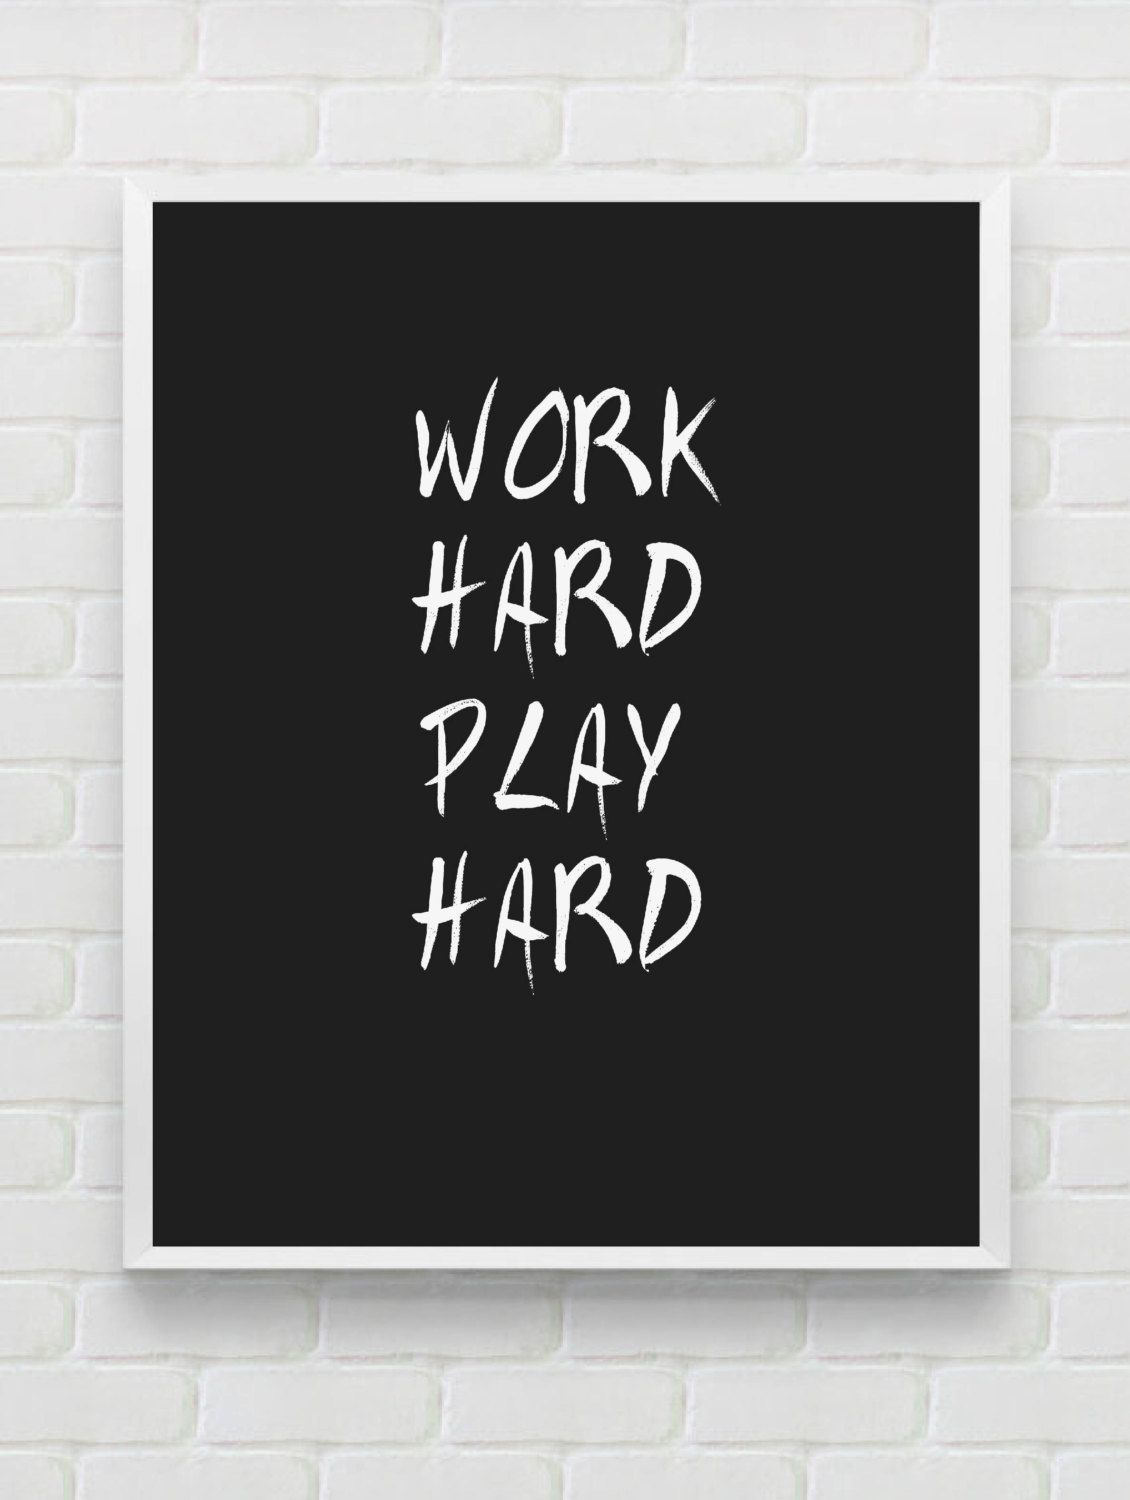 Printable Typography Art Work Hard Play Hard Inspirational Quote Black And White Minimalist Wall Decor Minimalist Wall Decor Typography Art Work Space Decor